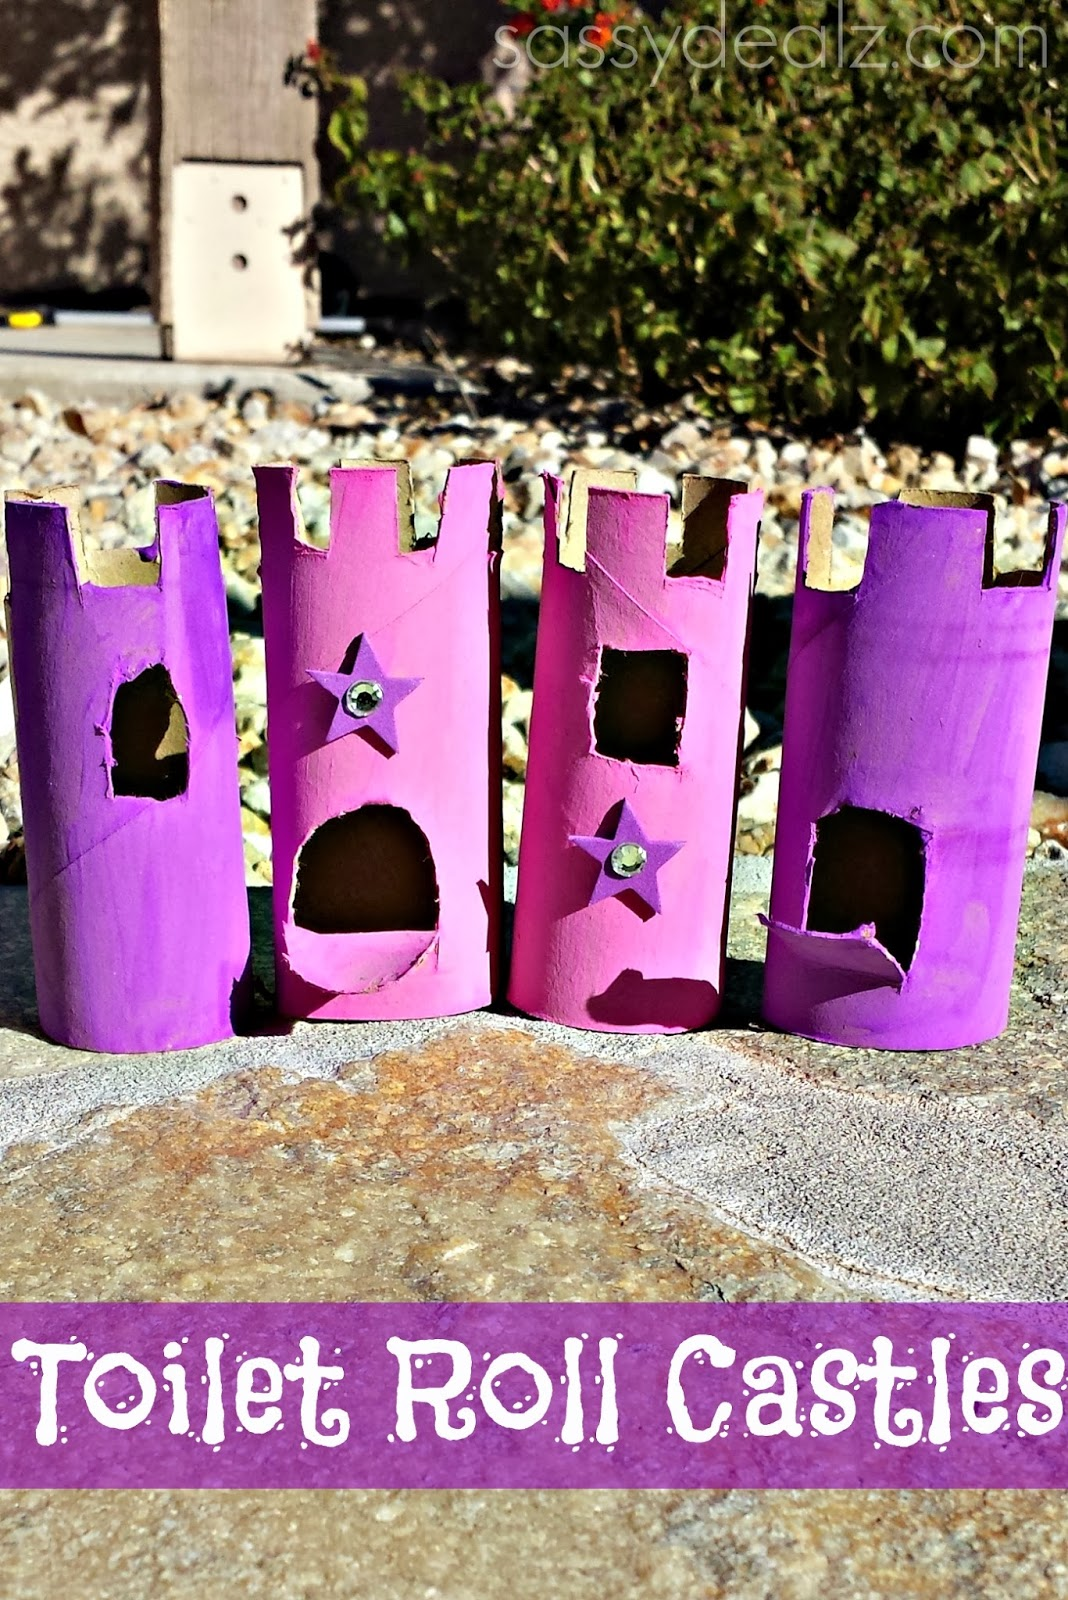 toilet paper roll castles {craft idea for kids} - crafty morning